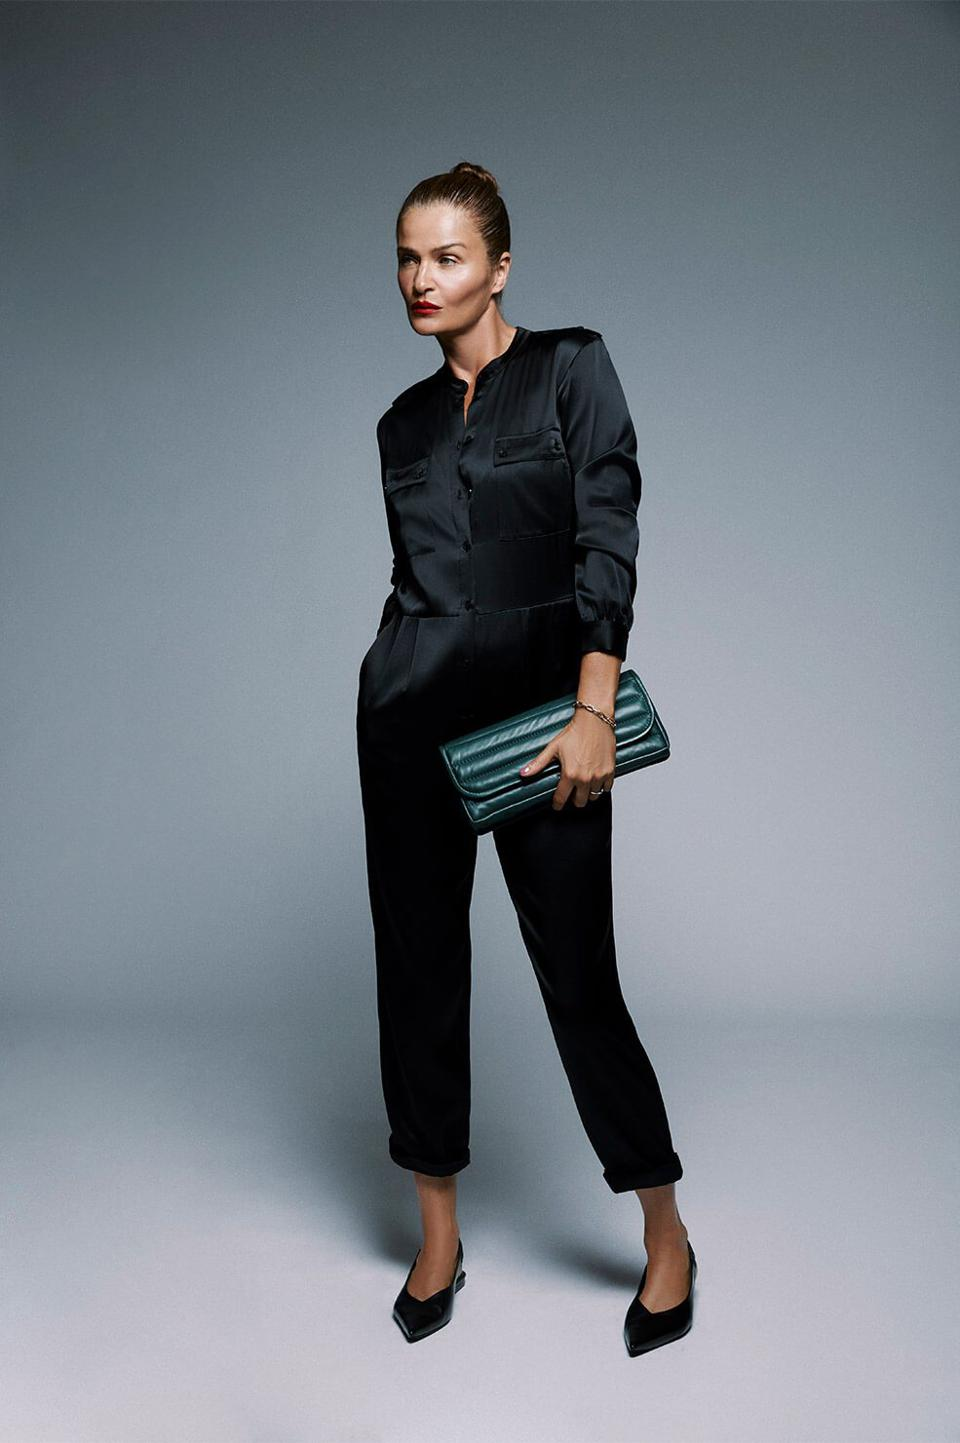 Helena Christensen models the Rosalie jumpsuit from her capsule collection collab with Anine Bing.